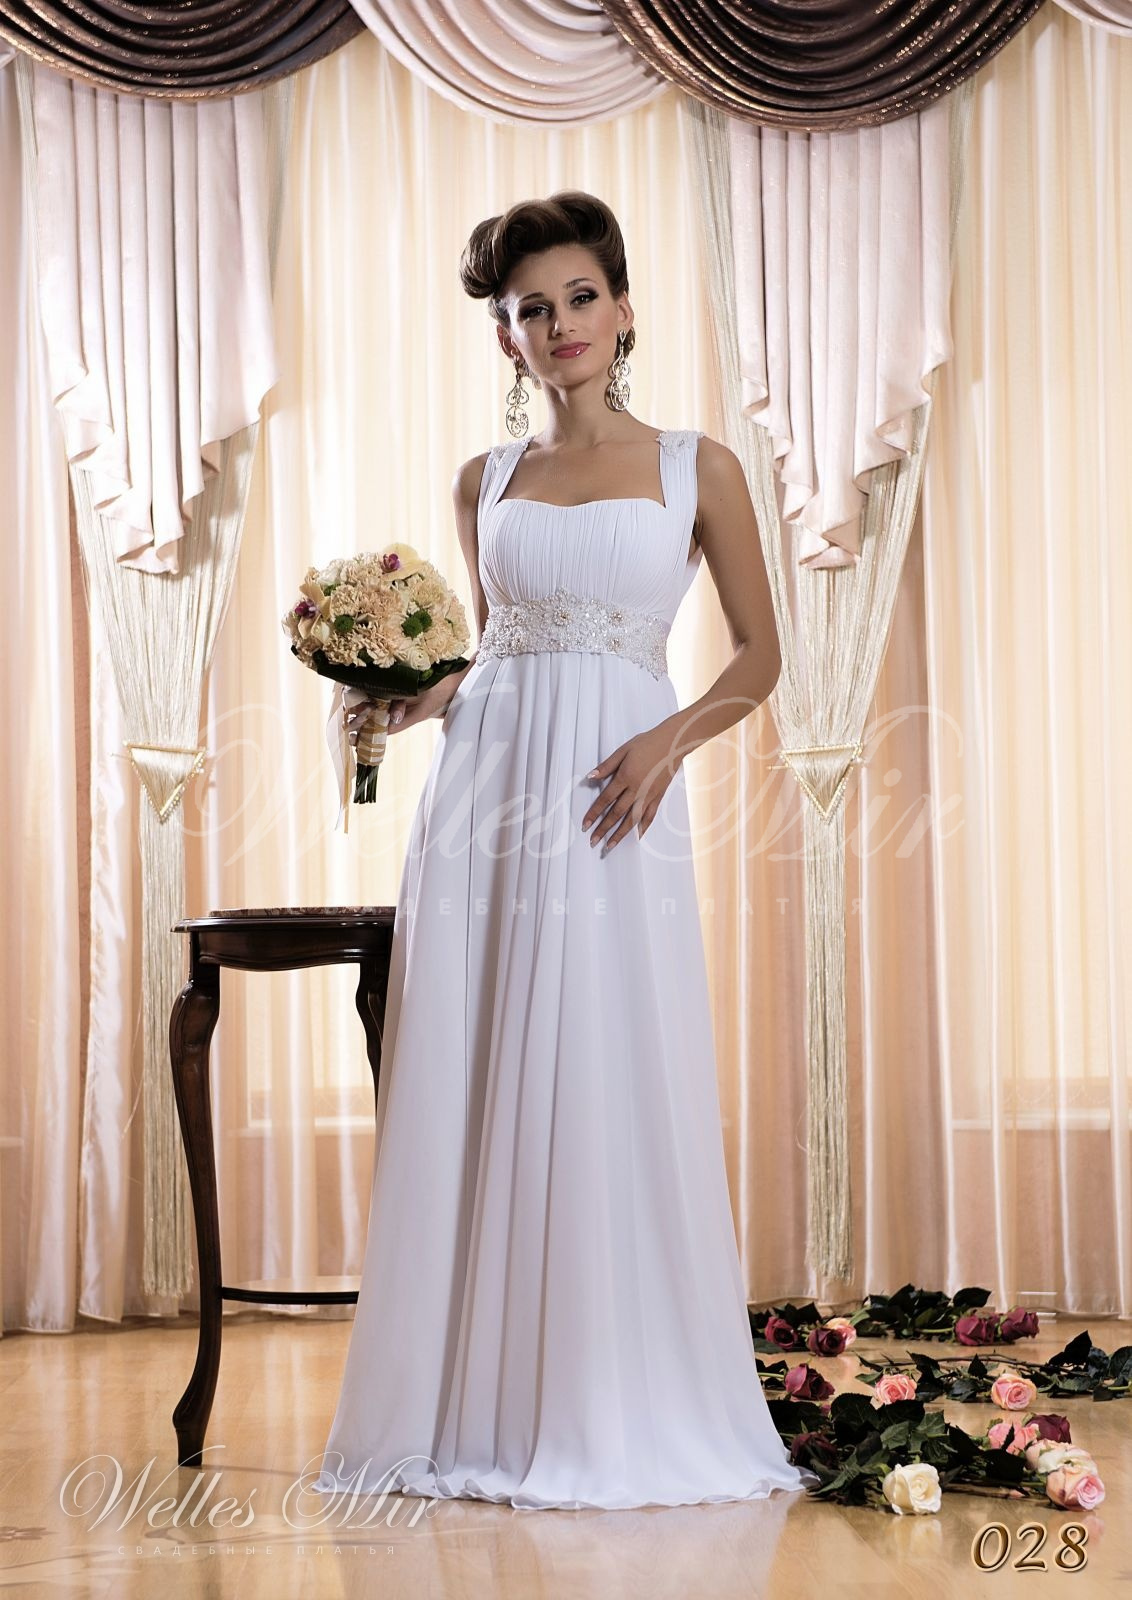 Wedding dresses 028